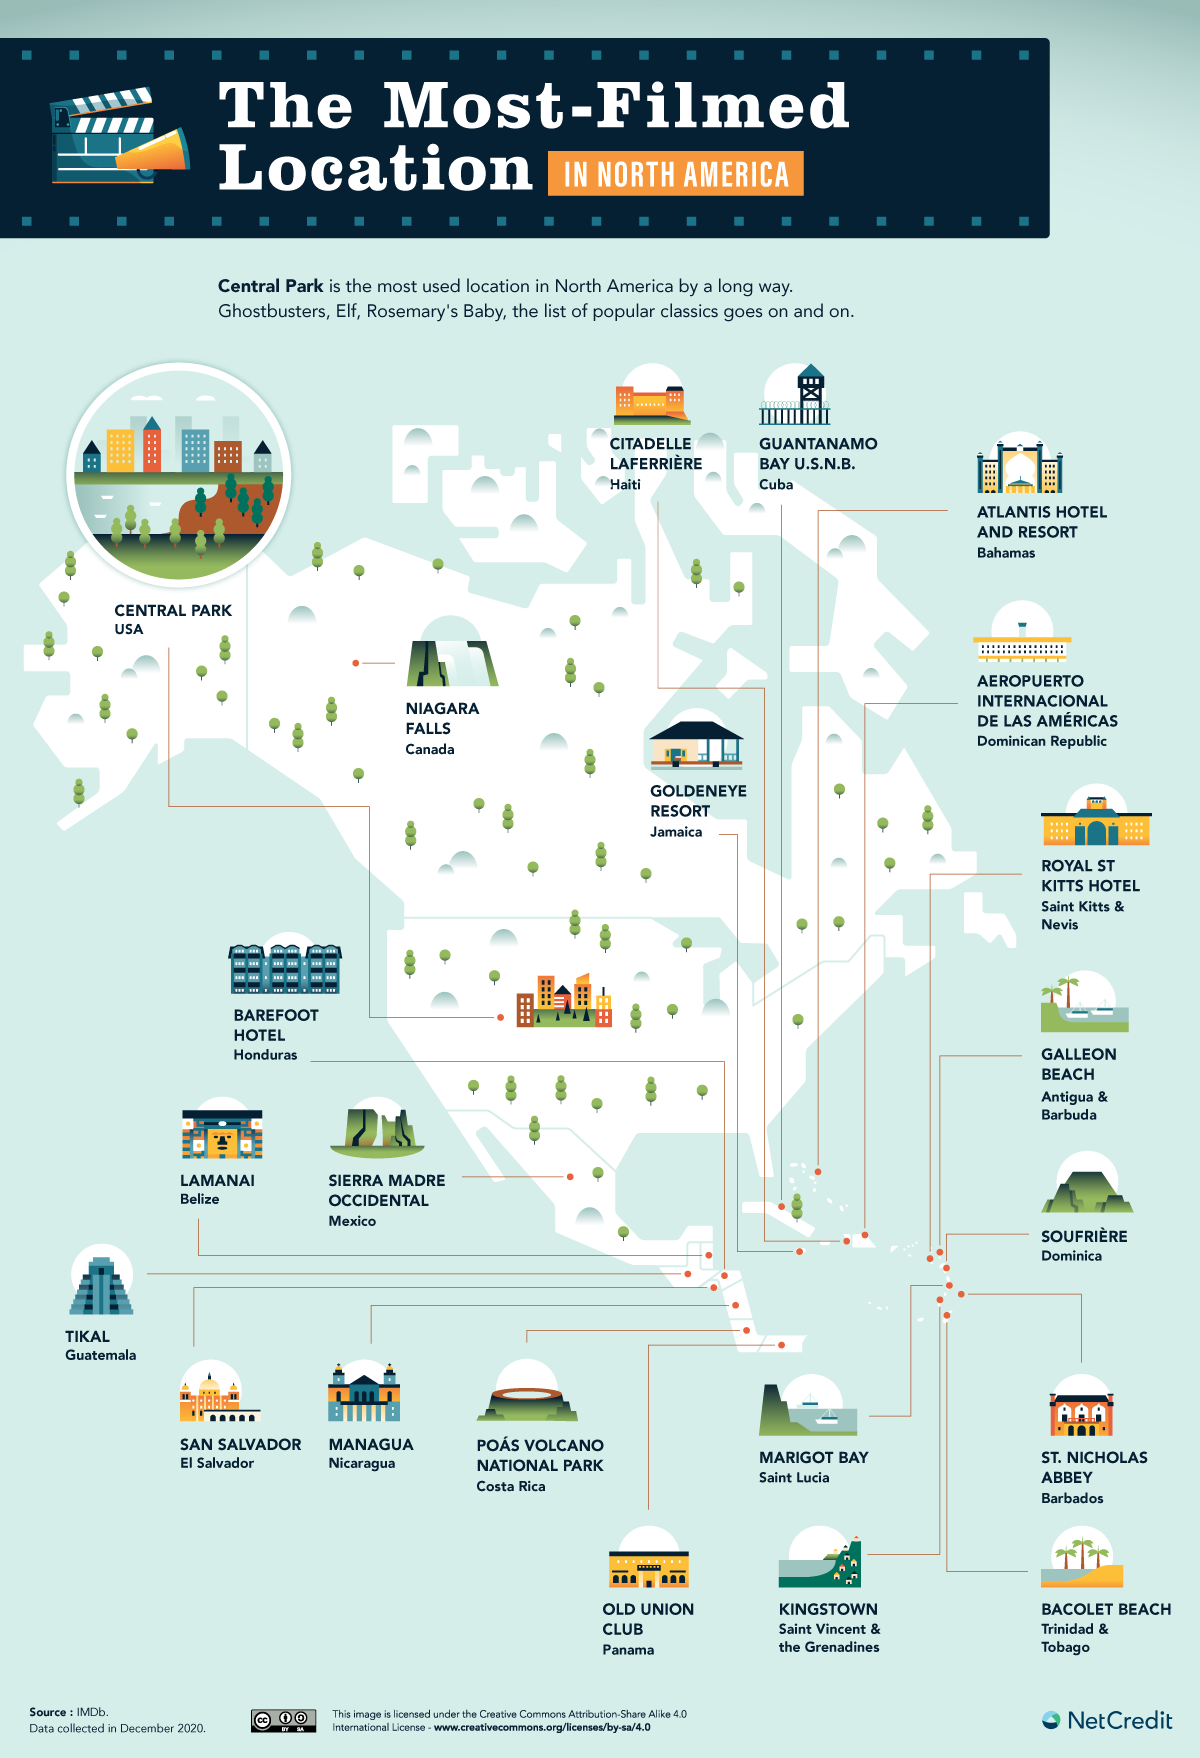 Most filmed locations in North America